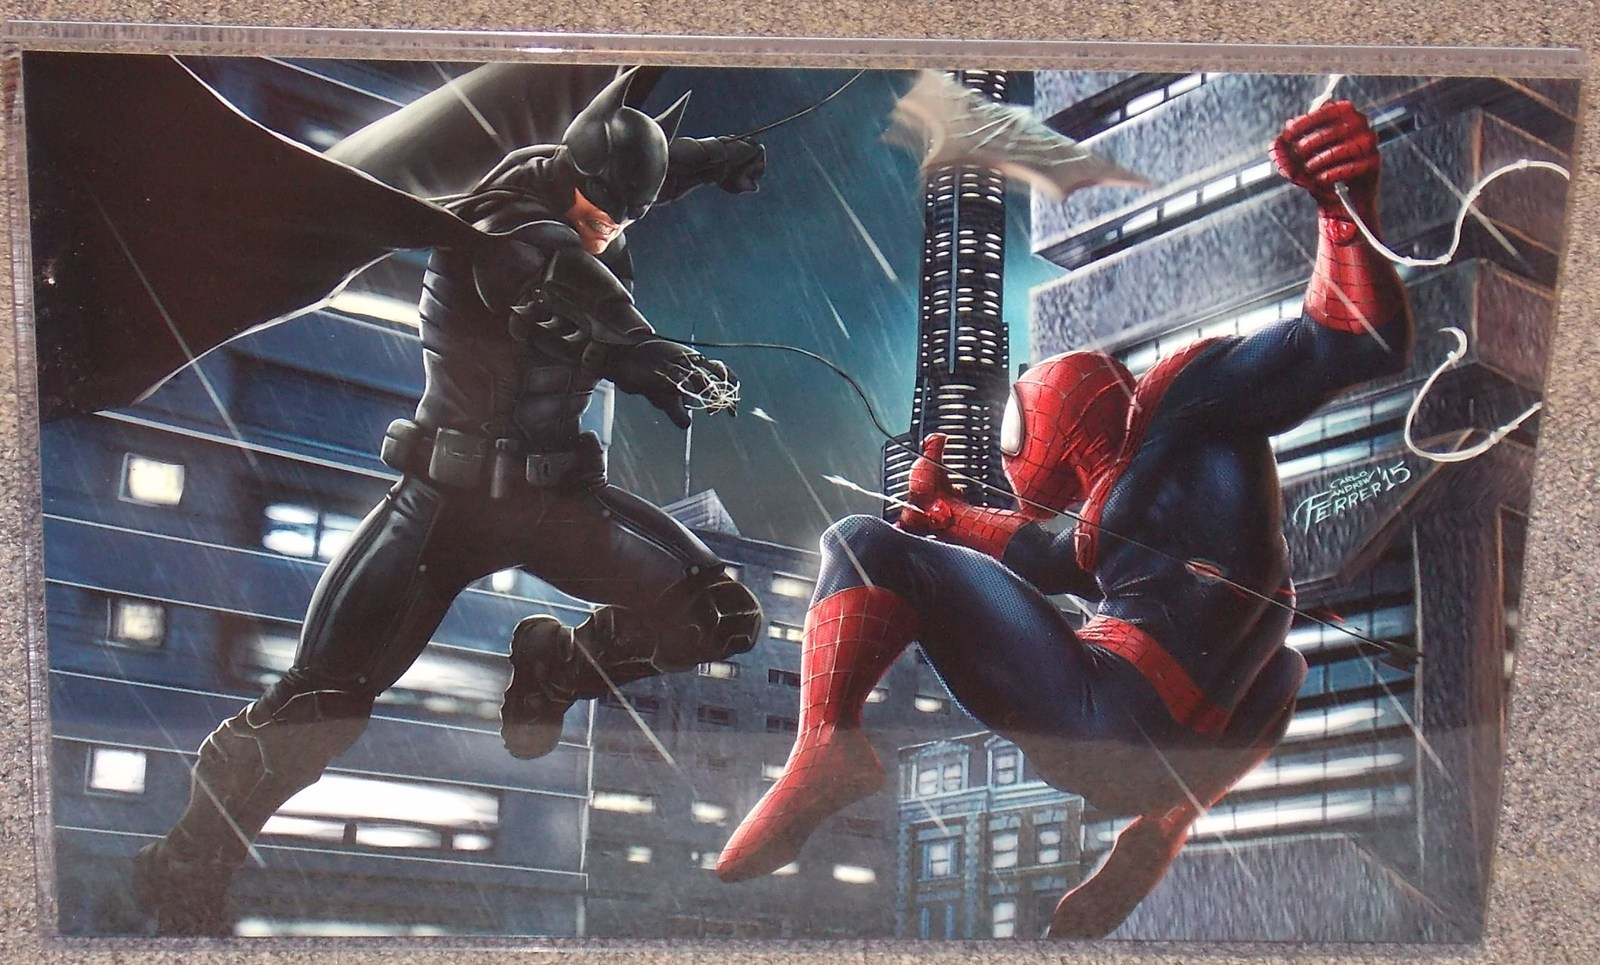 Primary image for Spider-Man vs Batman Glossy Print 11 x 17 In Hard Plastic Sleeve